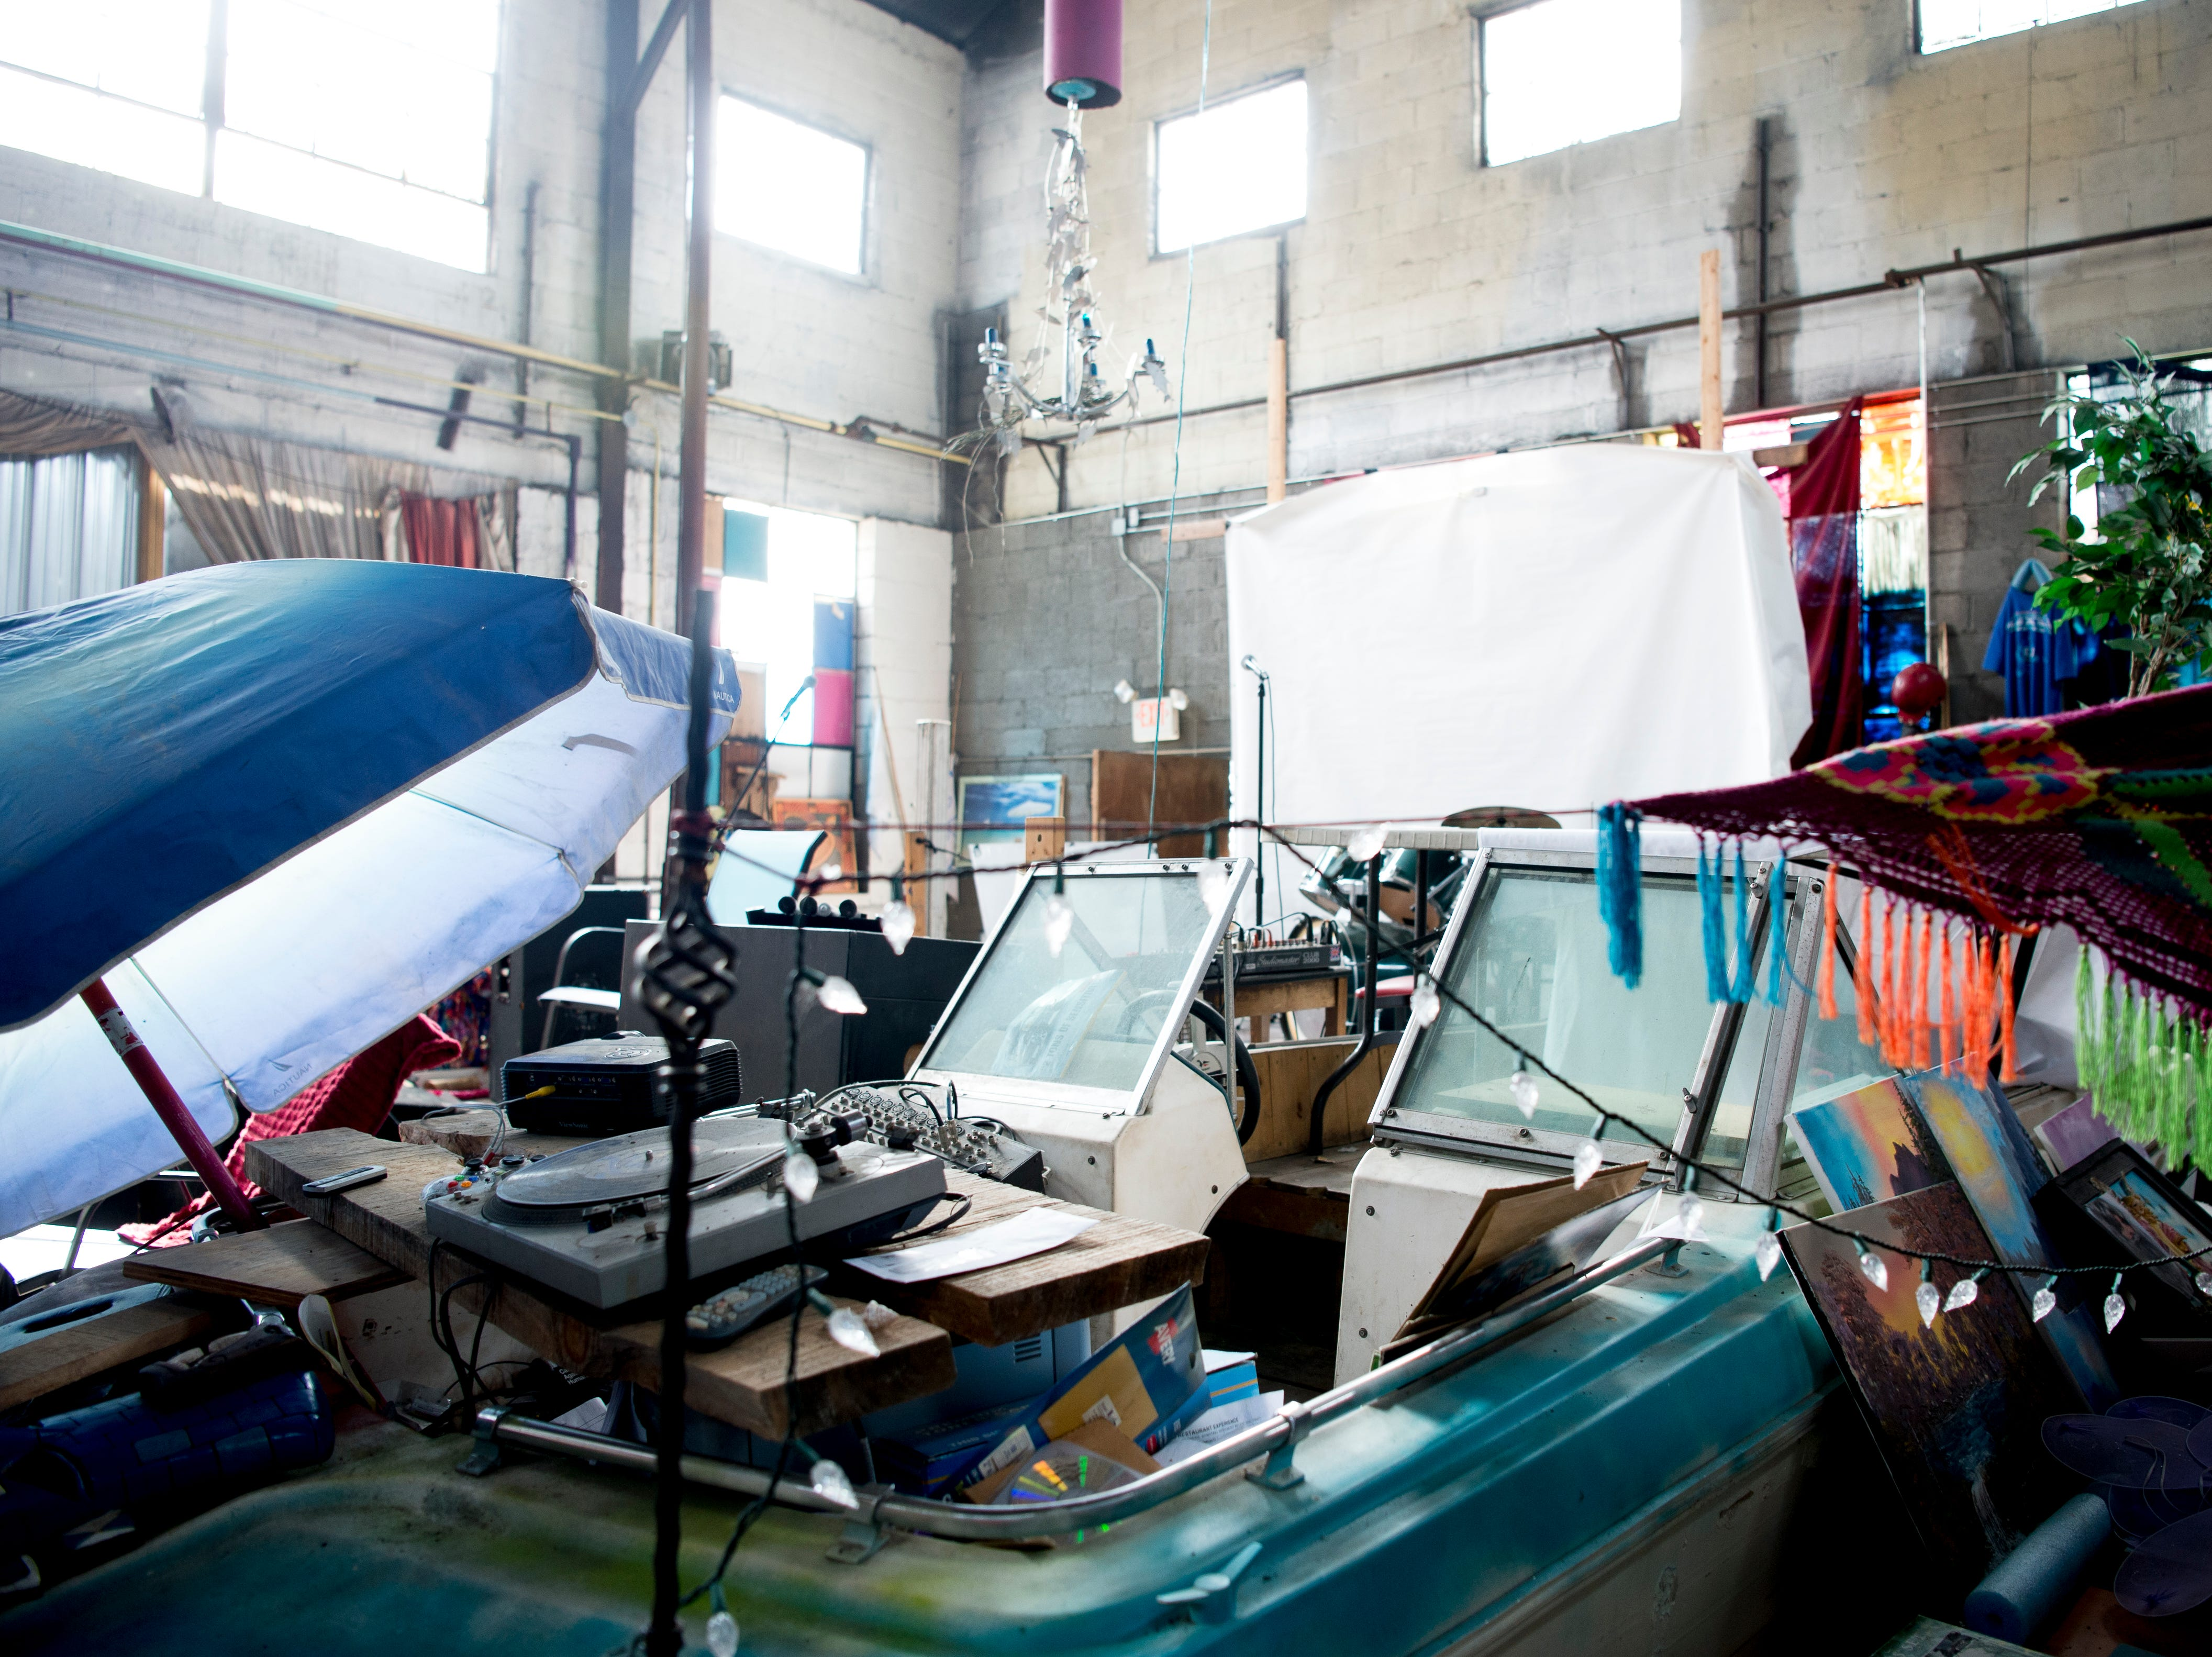 A boat sits in the center of the venue at Bar Marley in Knoxville, Tennessee on Thursday, February 14, 2019. The Caribbean-themed Bar Marley is facing possible acquisition and condemnation by KCDC due to code violations.